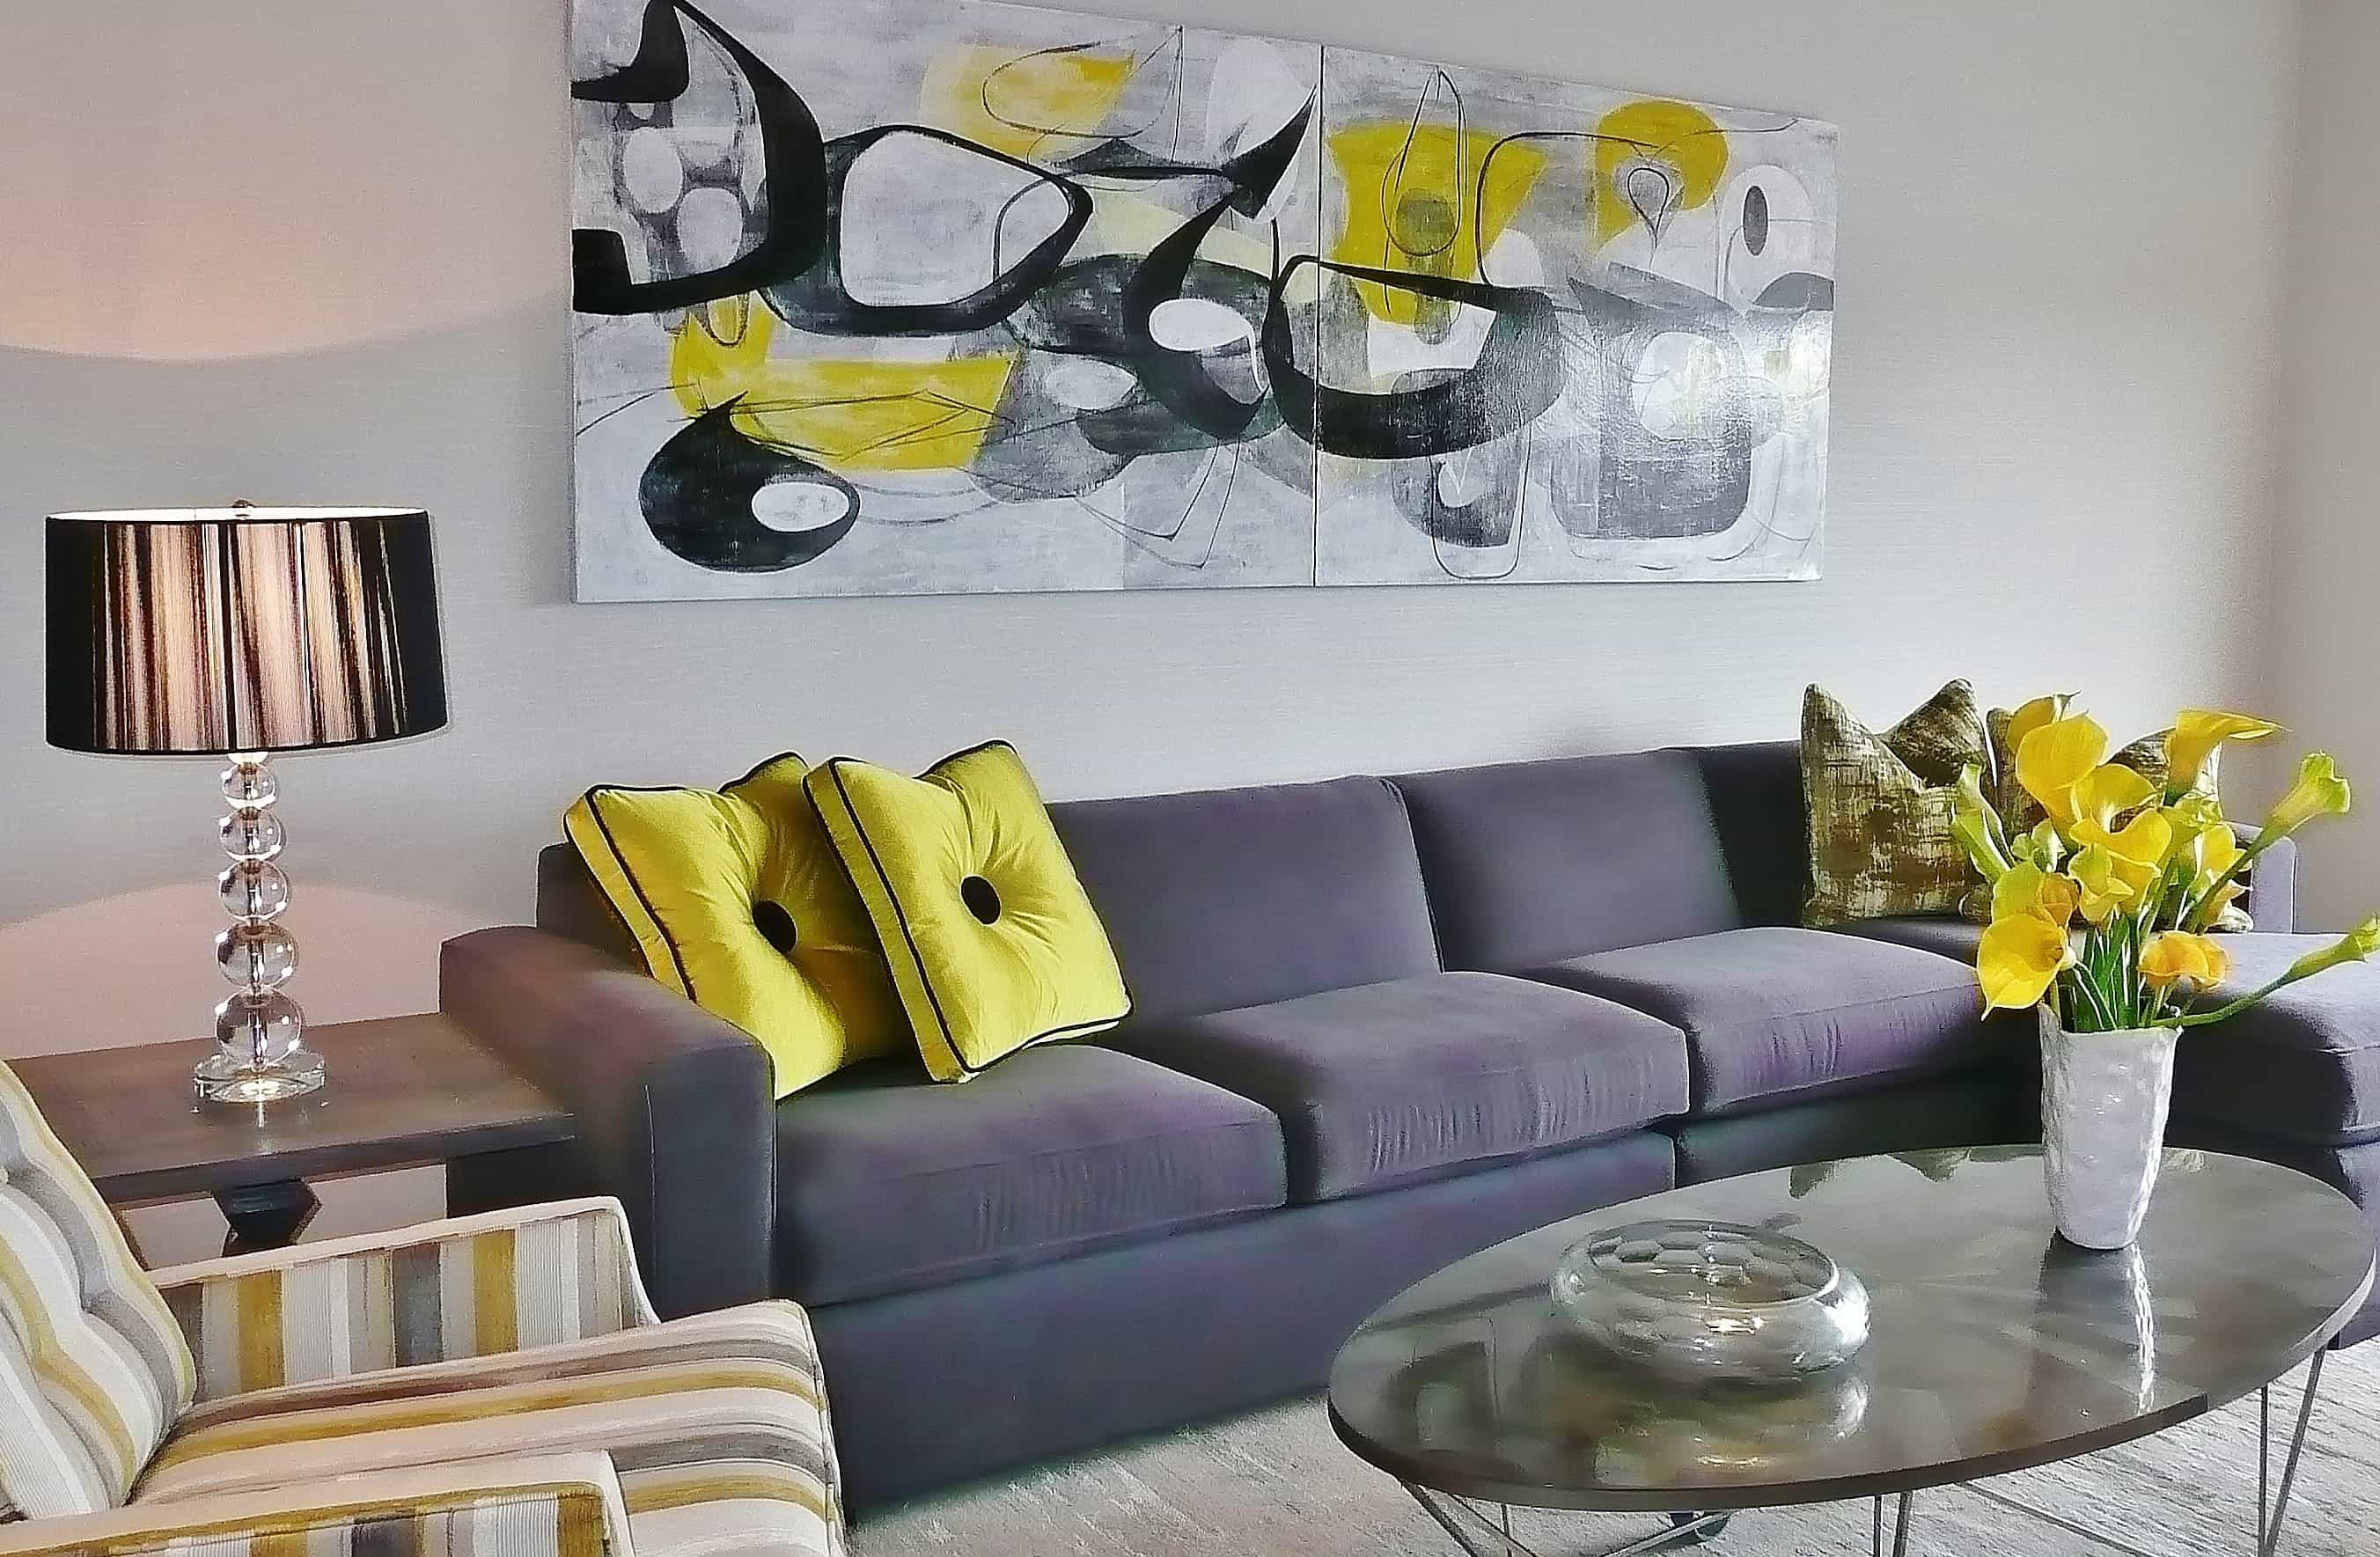 Low Budget Decoration For Modern Fascinatingly Attractive Living Room With Abstract Art (Image 11 of 16)